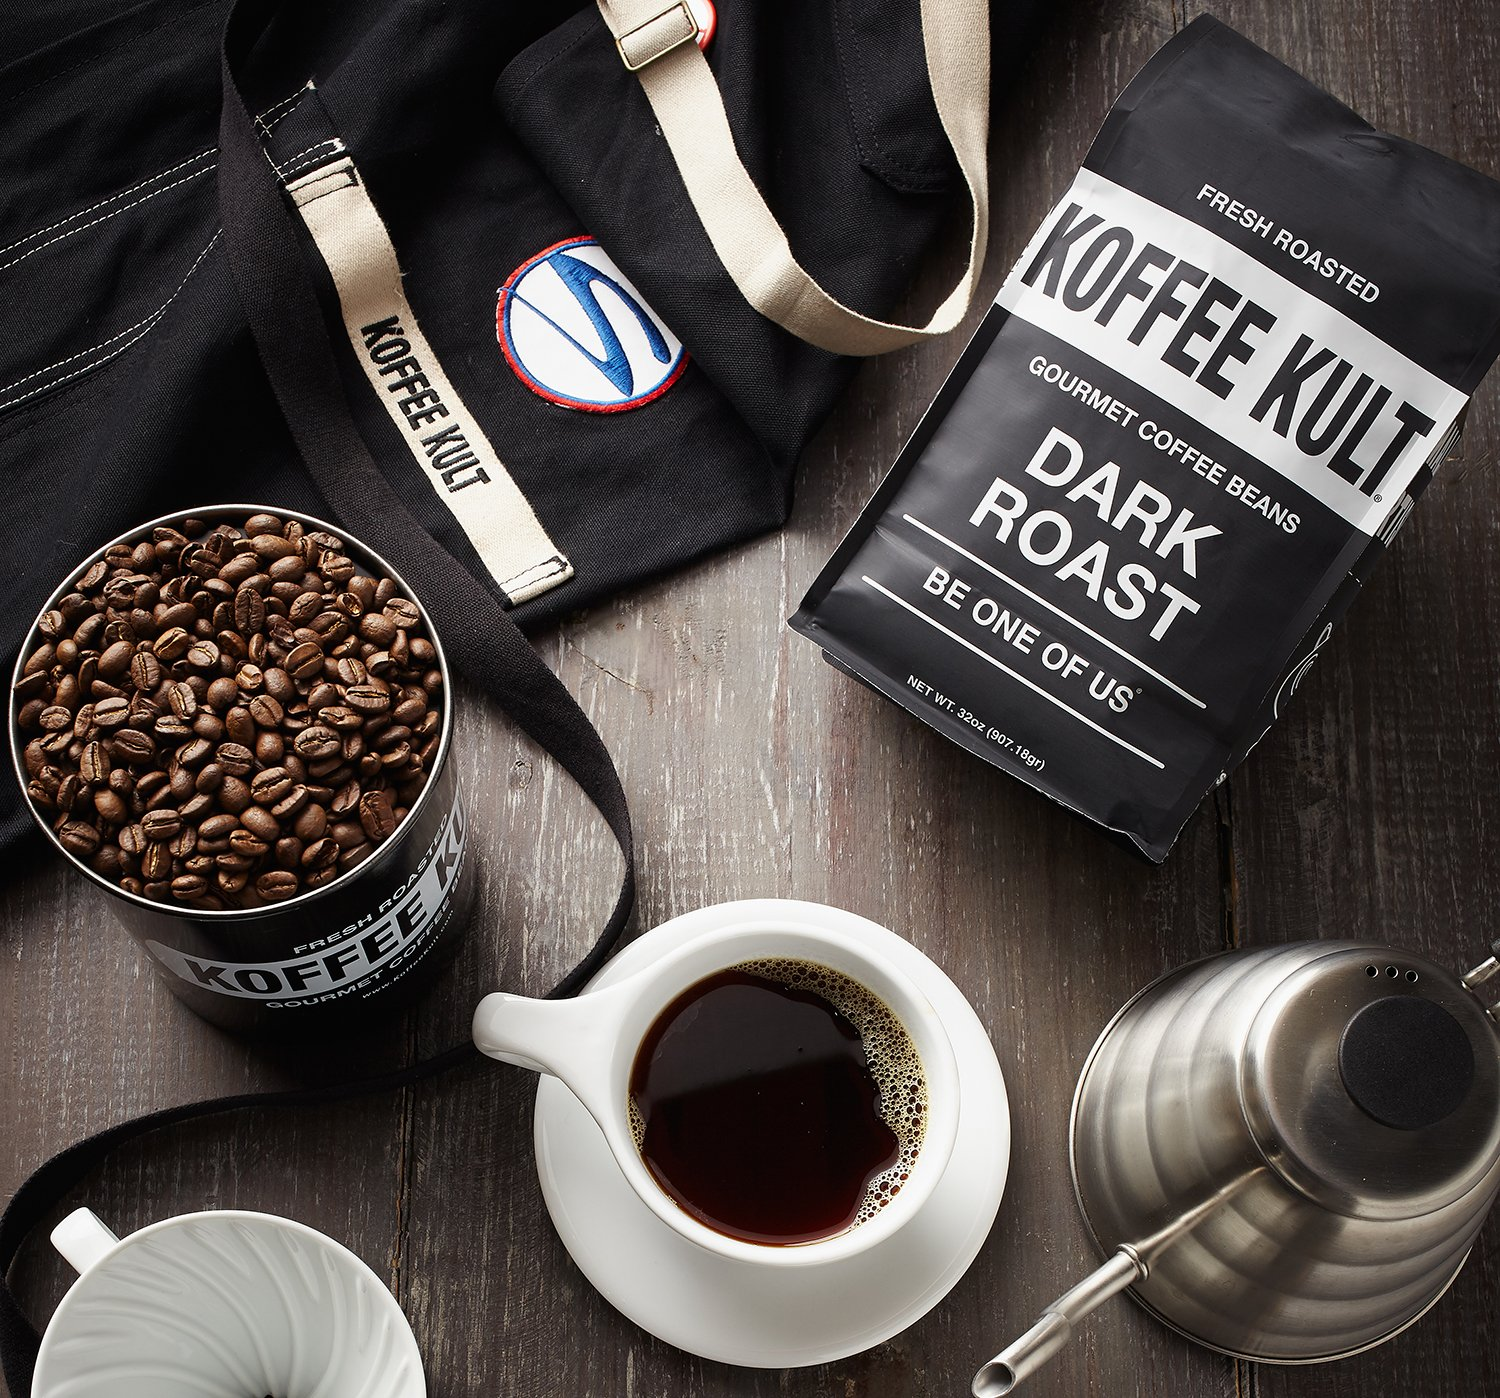 Koffee Kult Dark Roast Flatly